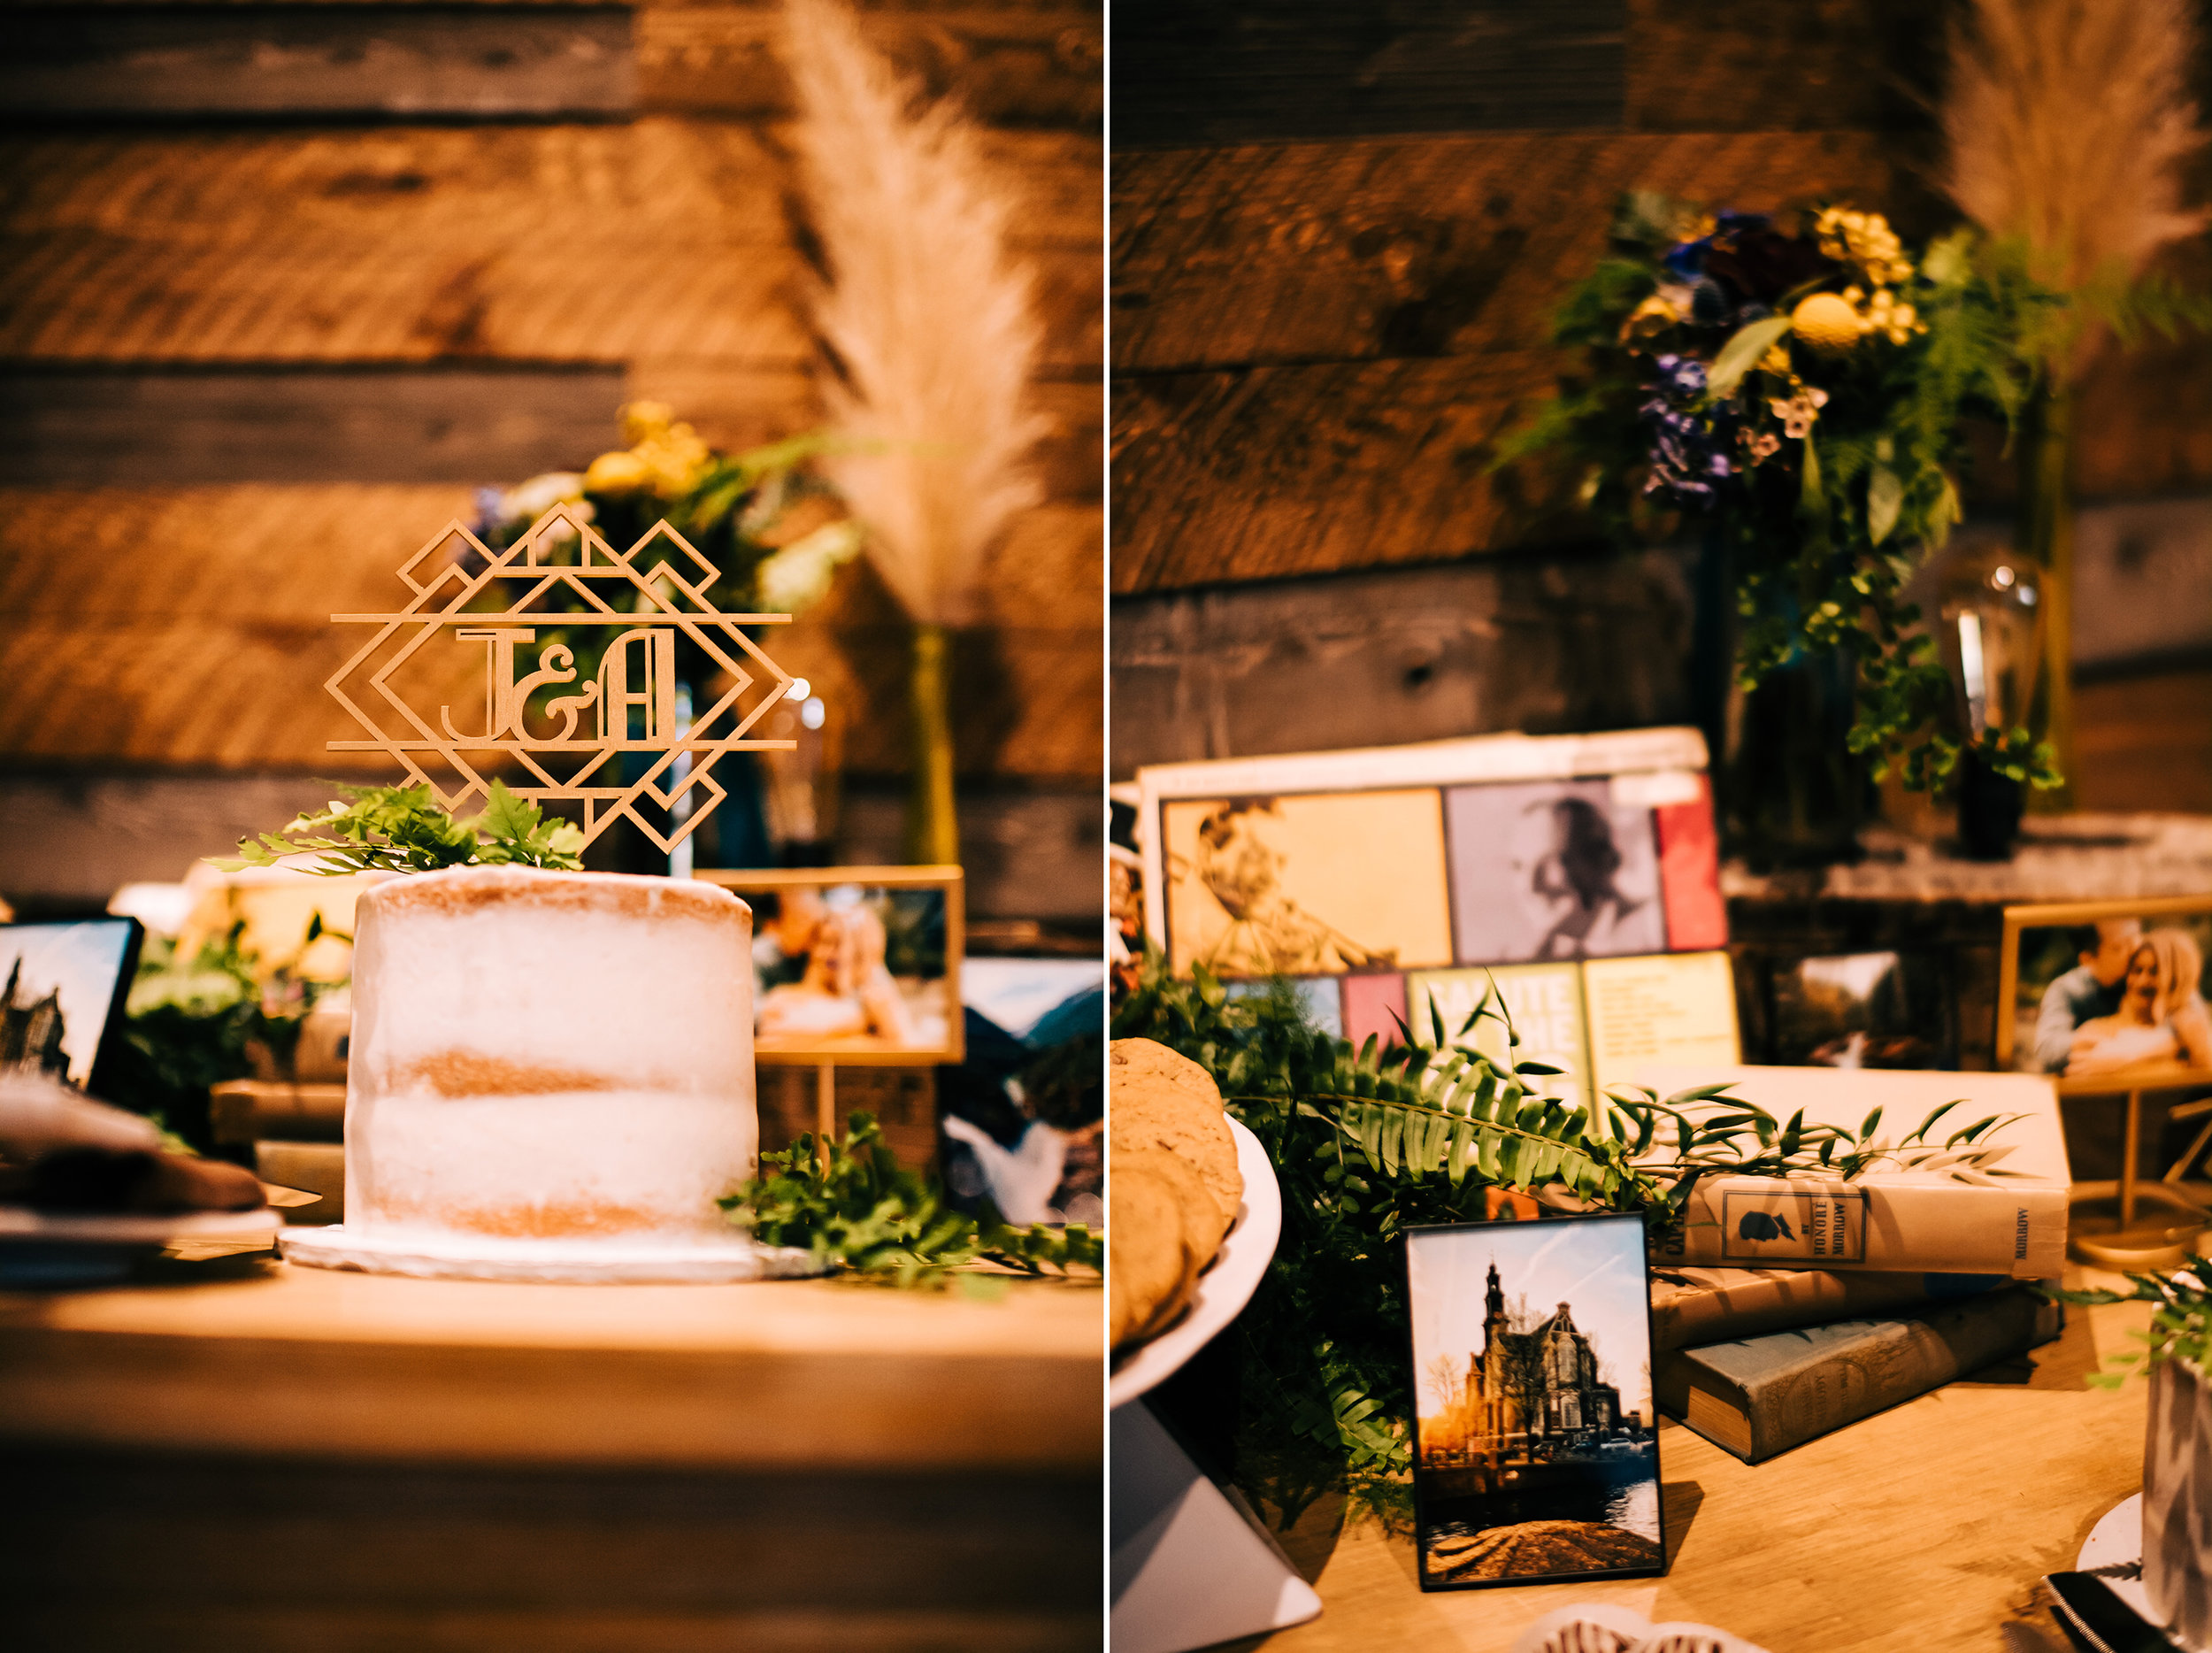 bay area nontraditional wedding photographer southern california boho wedding love light magic san francisco oakland northern california-1031.jpg